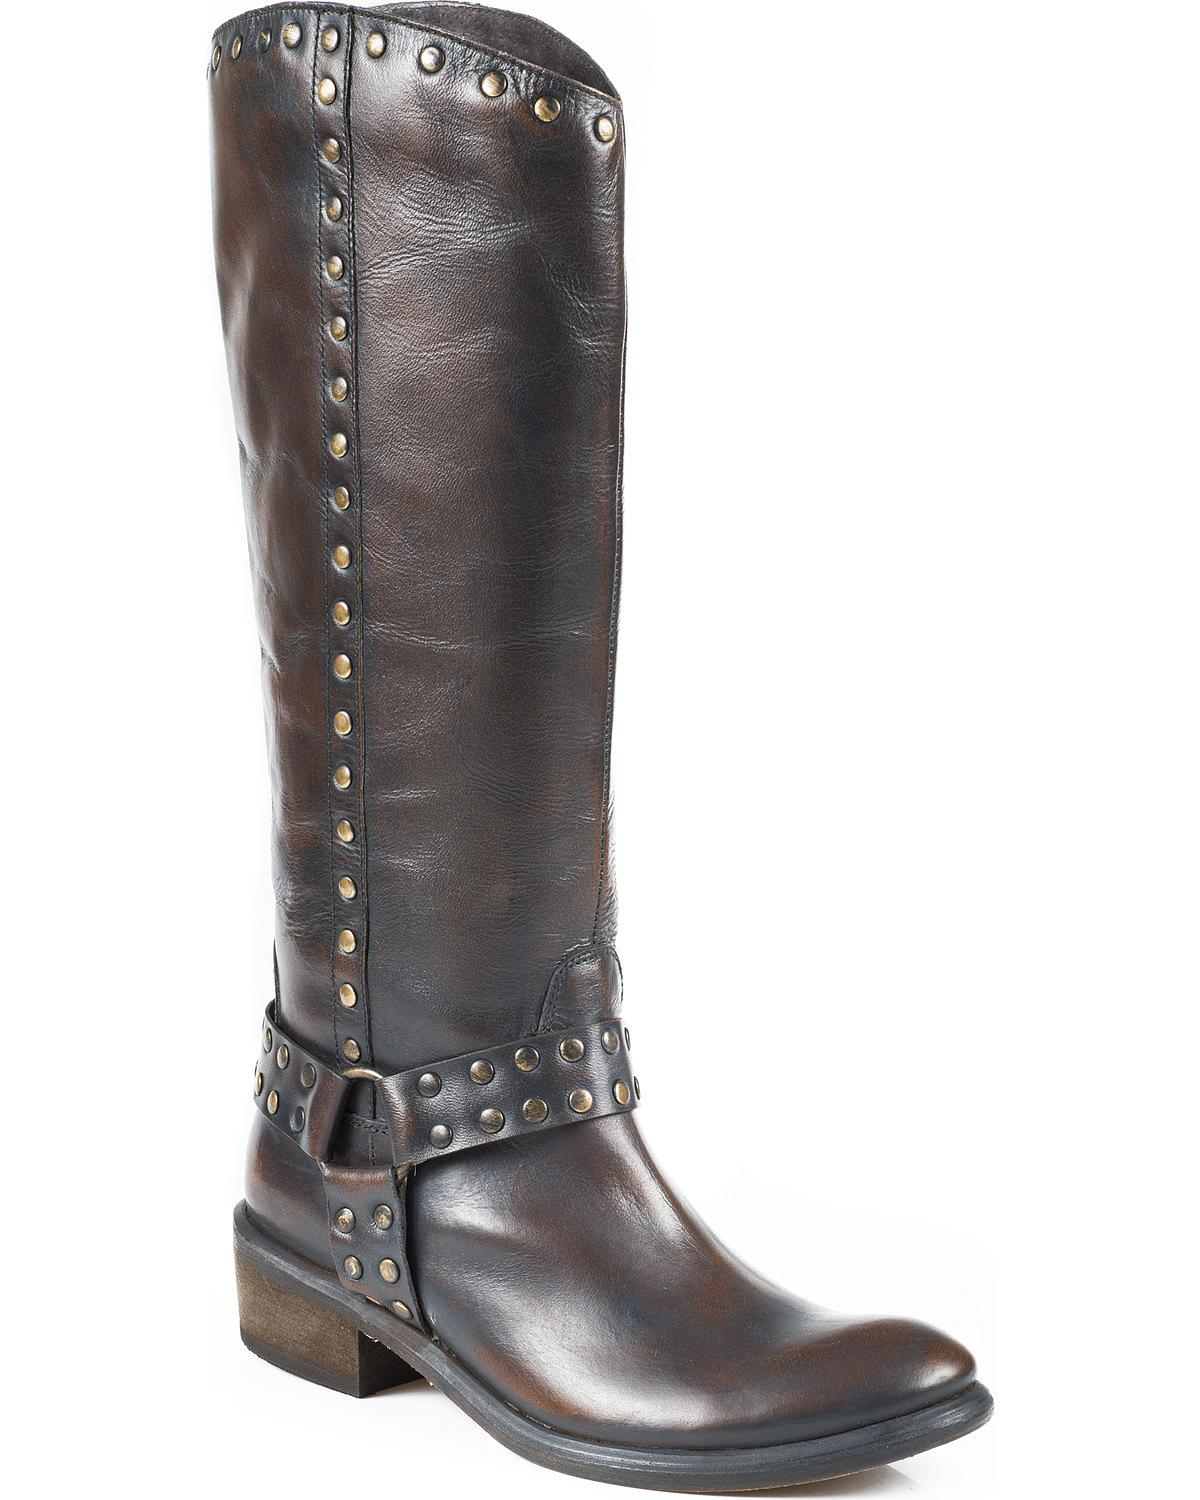 Elegant Womens Riding Boots | EBay